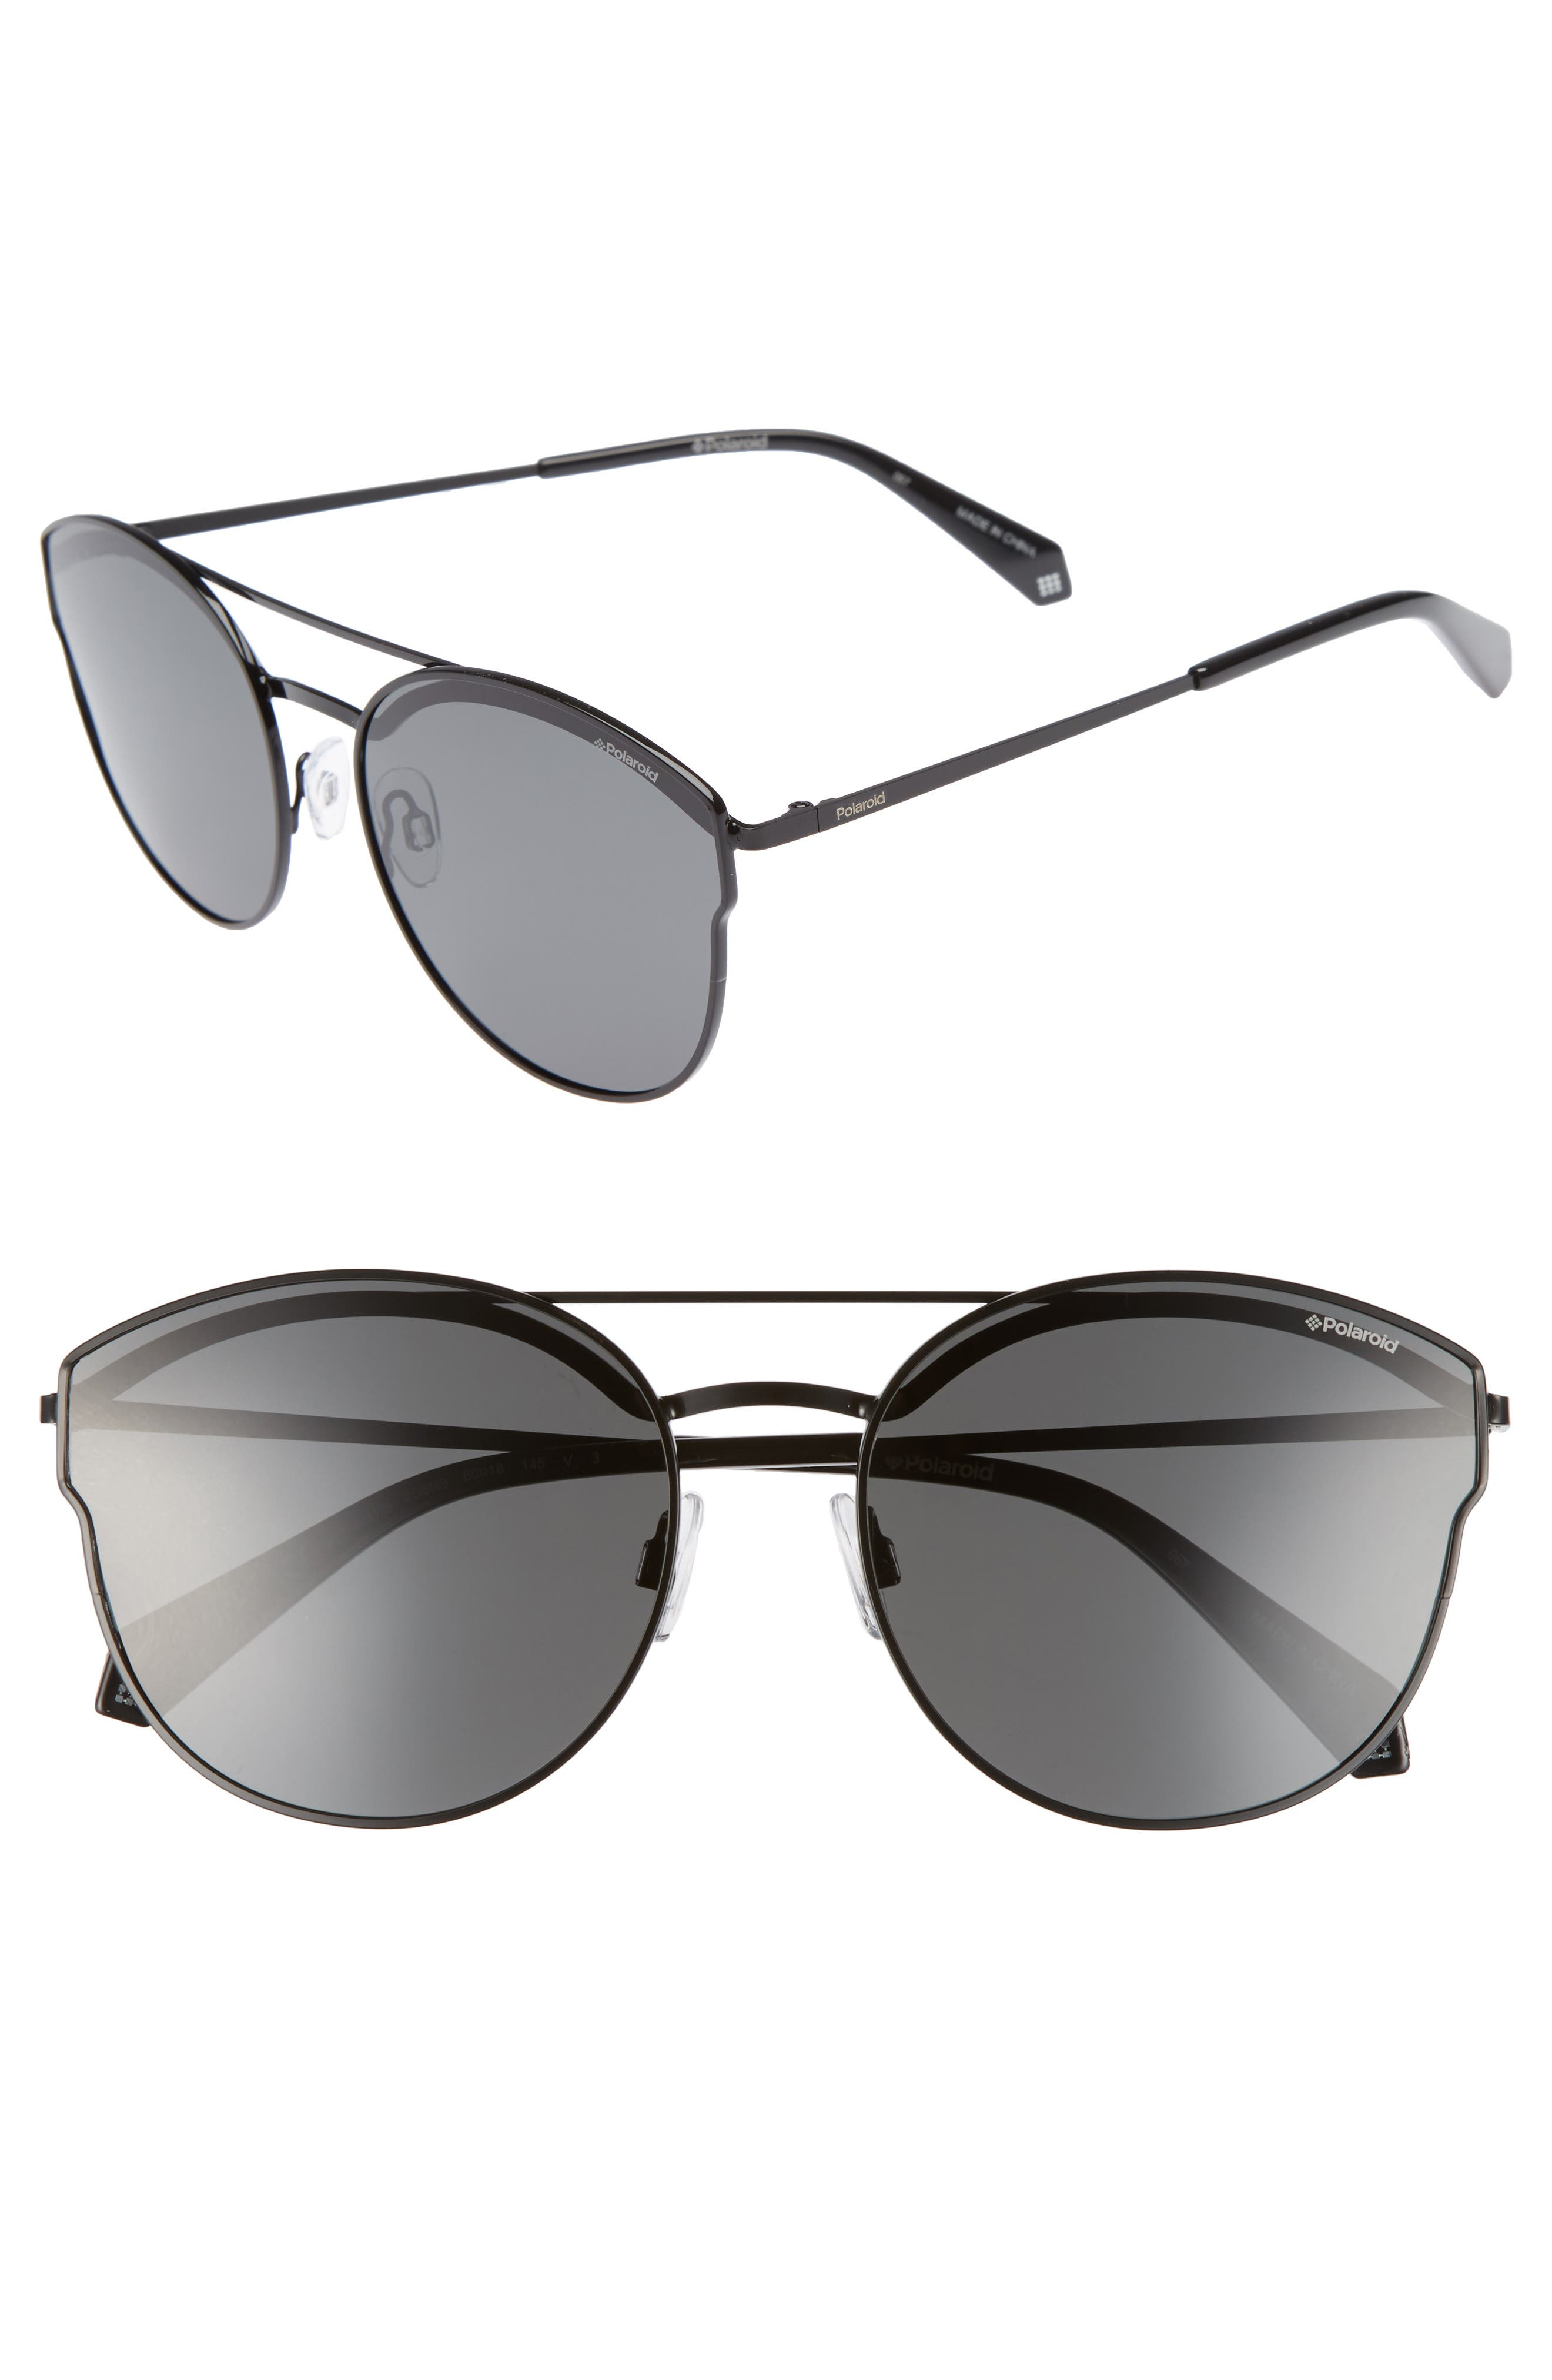 60mm Polarized Round Aviator Sunglasses,                         Main,                         color, 001